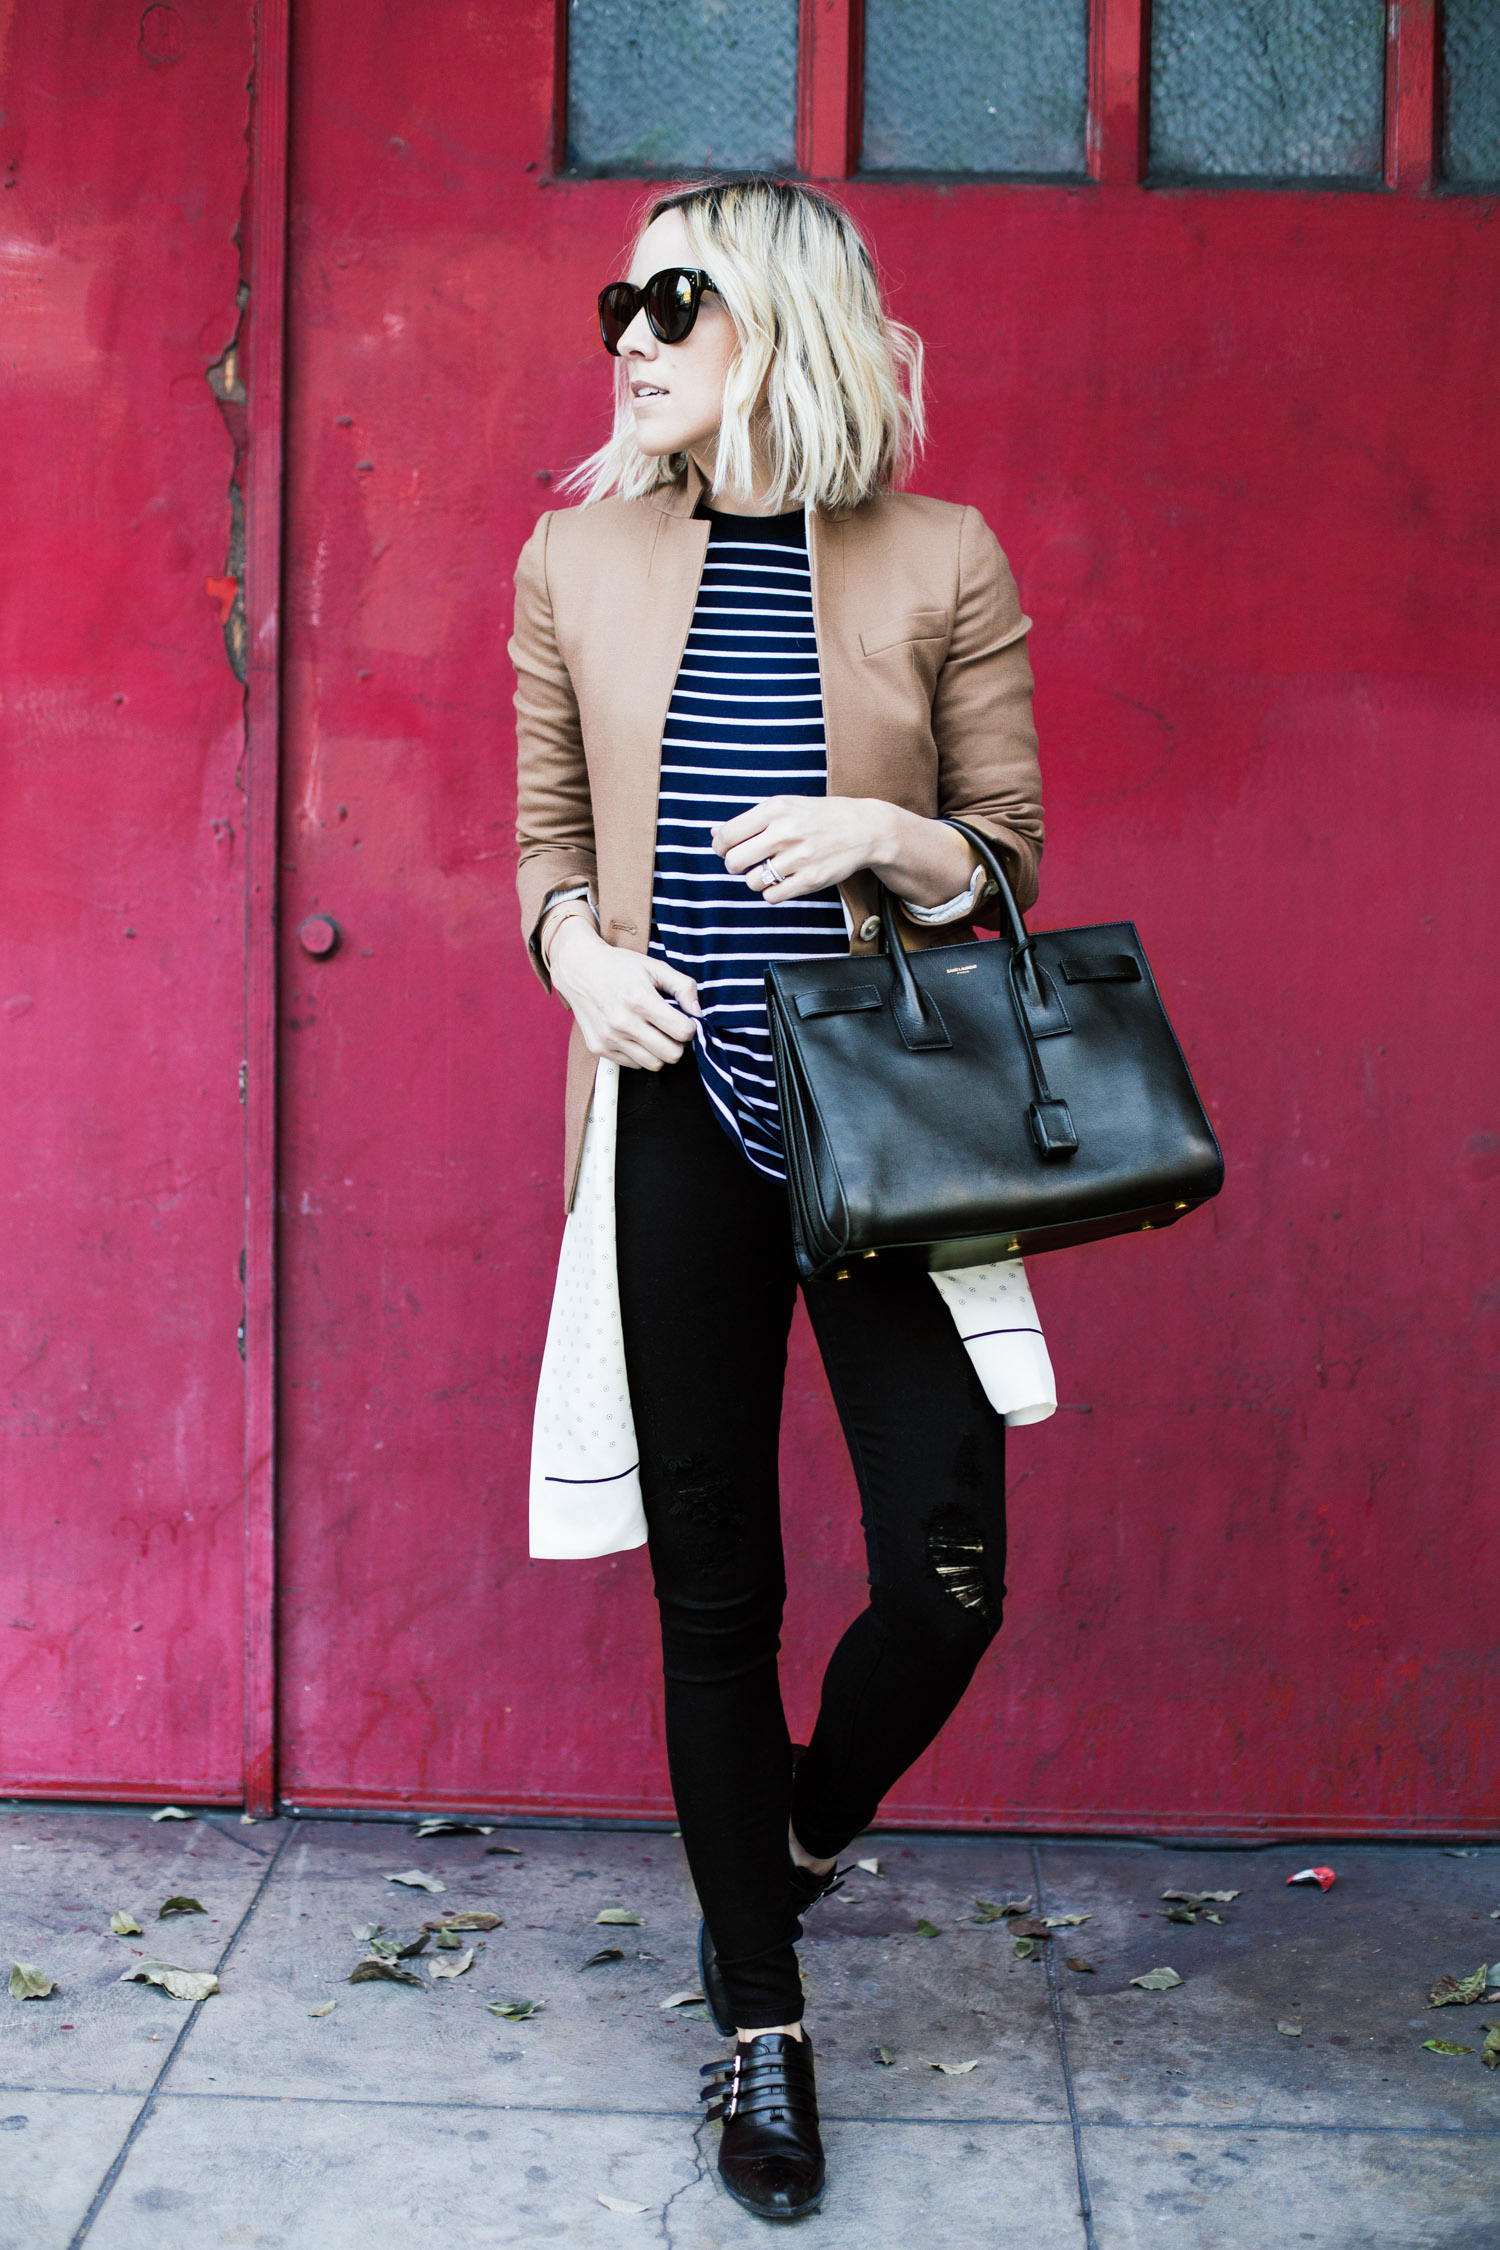 Steal Her Style: Fresh & Clean | The Daily Dose